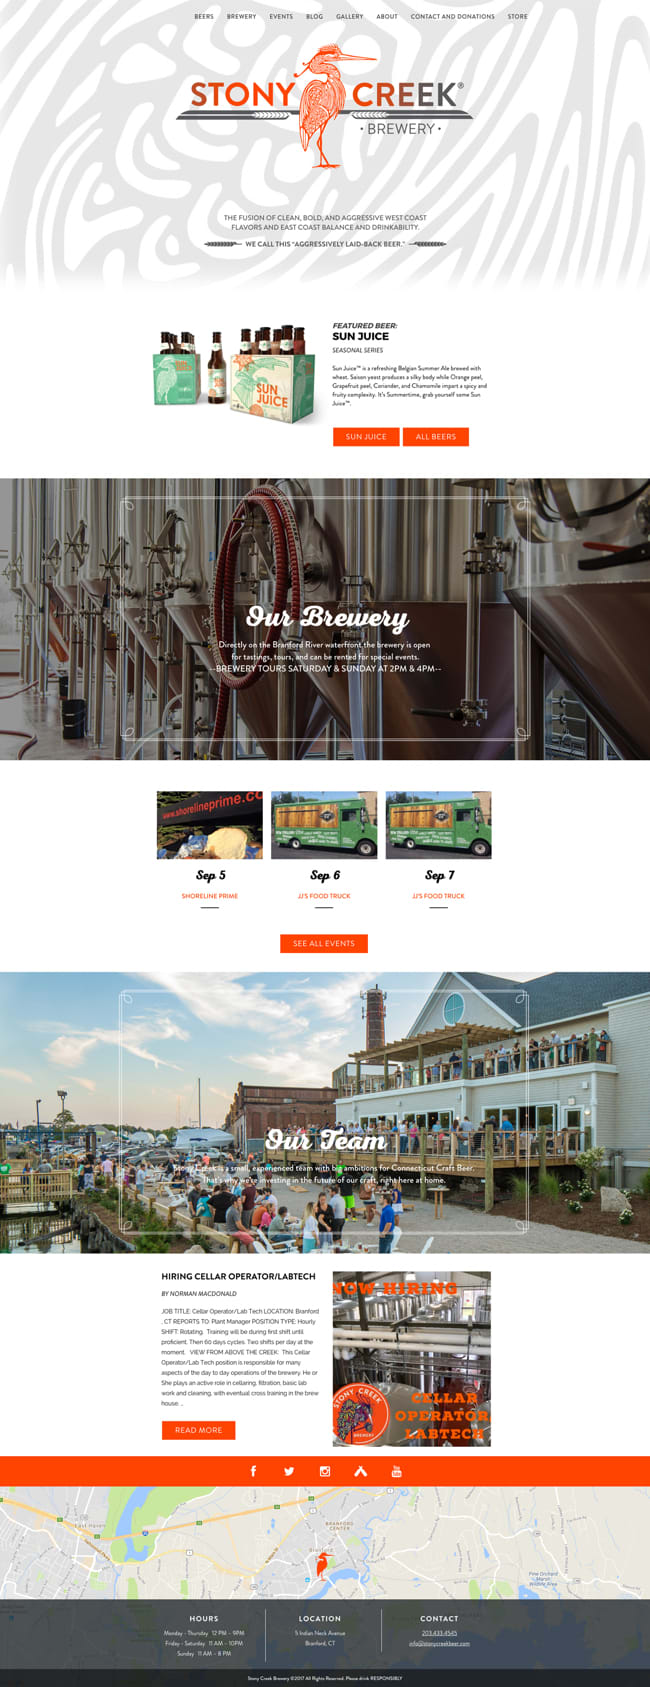 Stony Creek Brewery Website